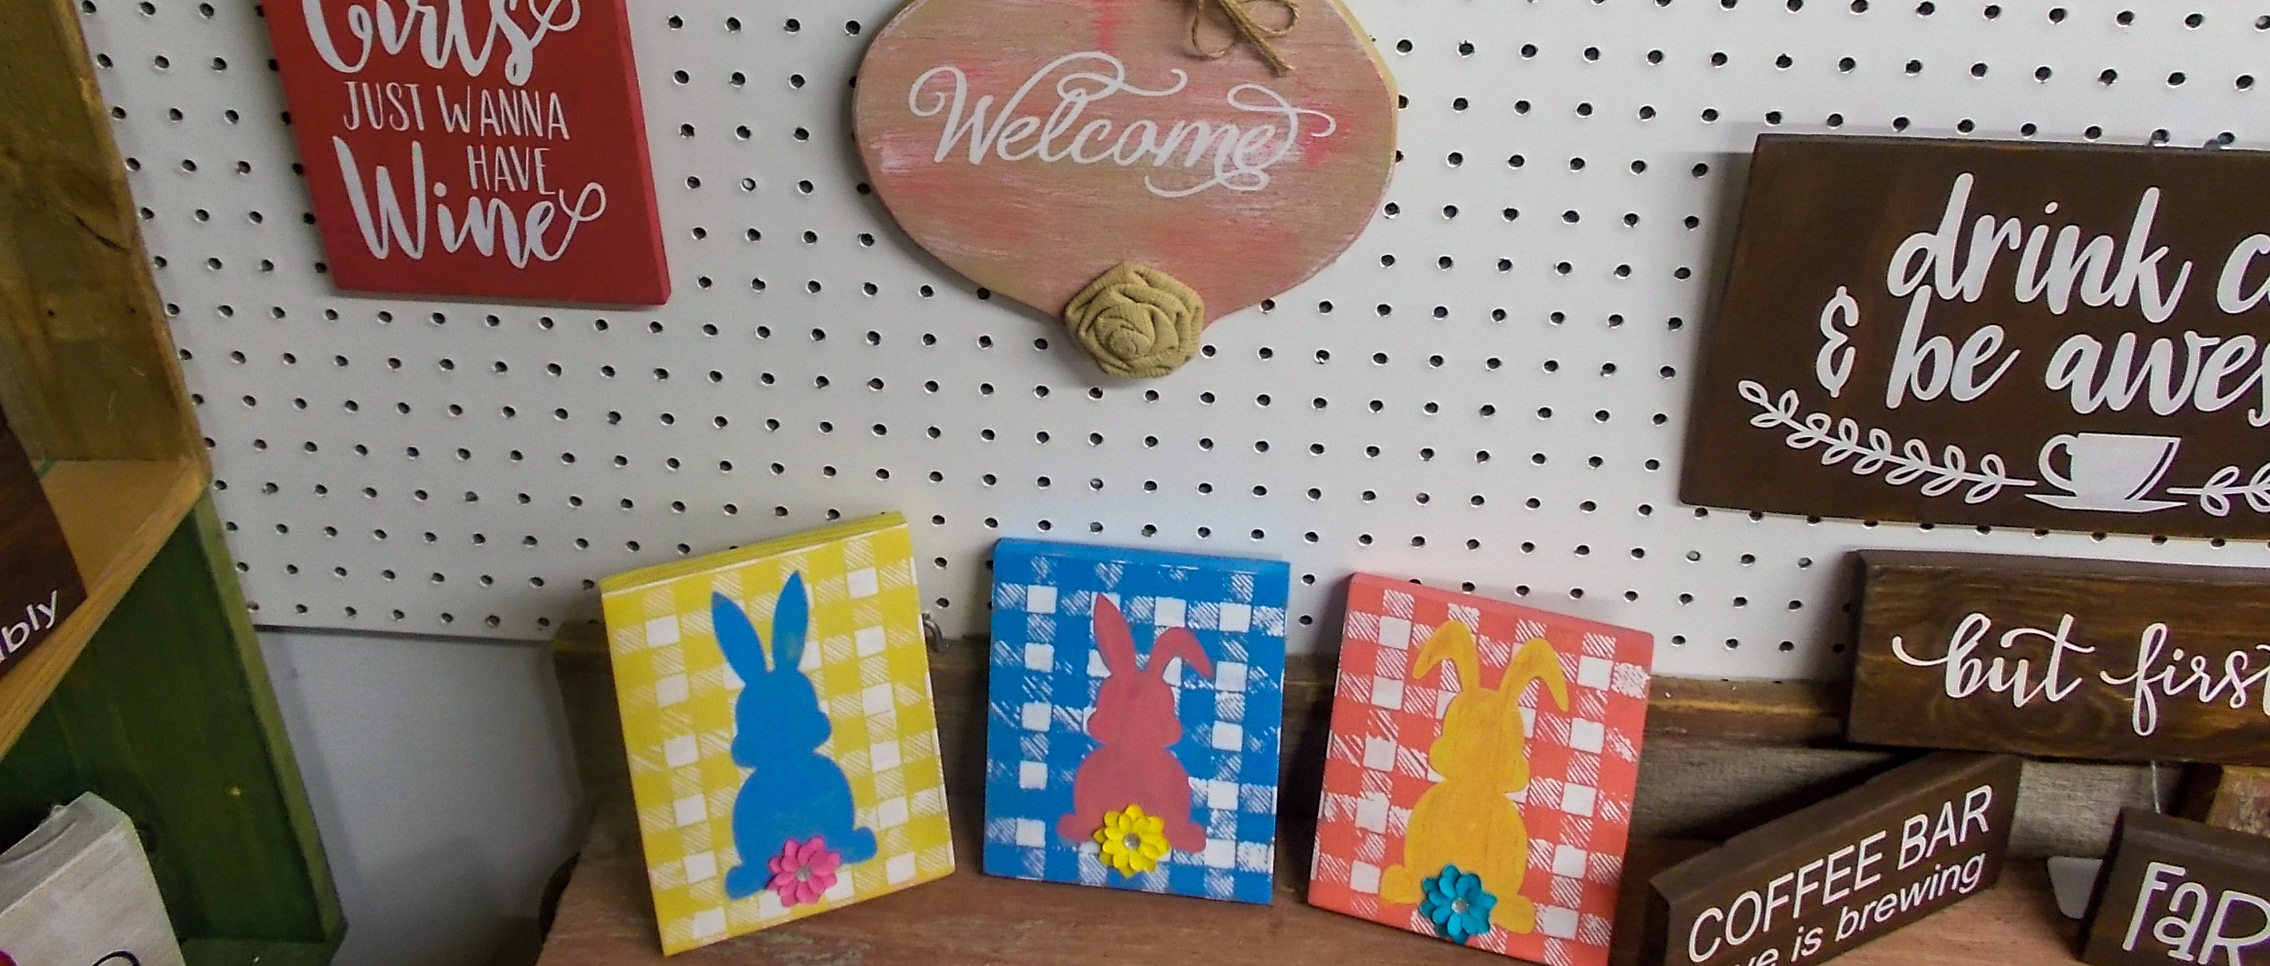 banner-easter-cms-treasures-under-sugar-loaf-winona-minnesota-antiques-collectibles-crafts